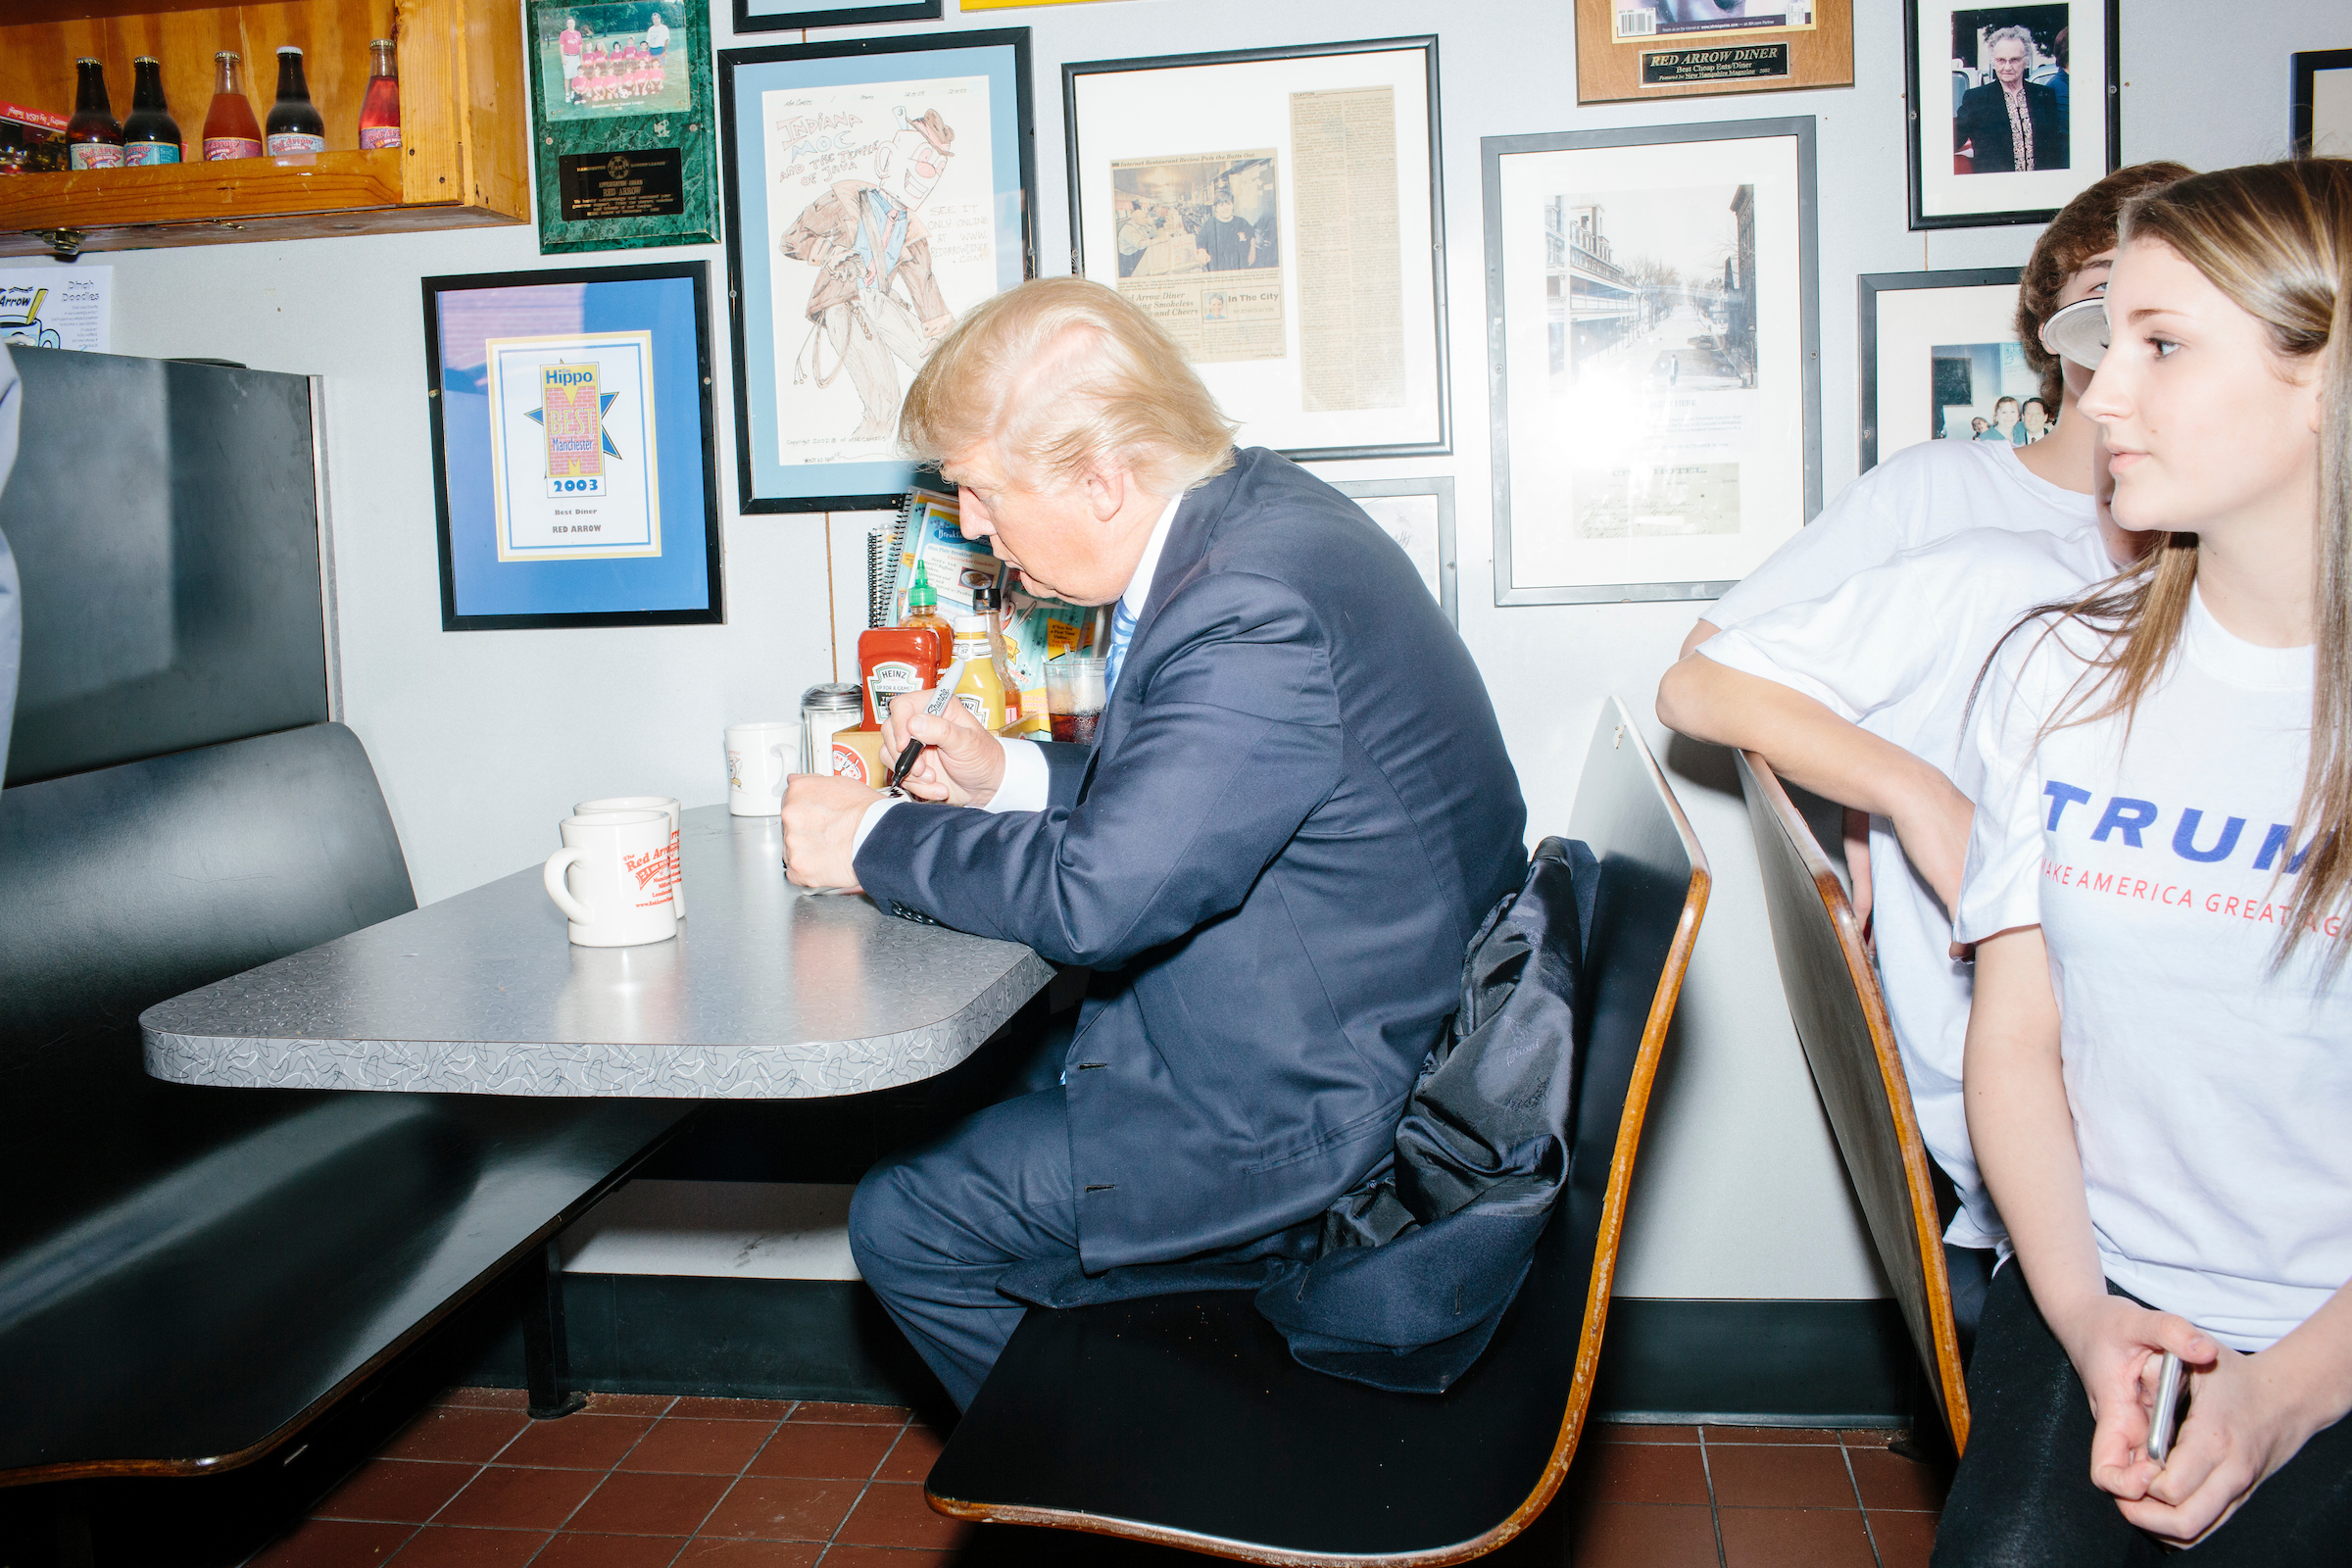 Republican presidential candidate Donald Trump autographs diner mugs after speaking to reporters at the Red Arrow Diner in Manchester, New Hampshire.